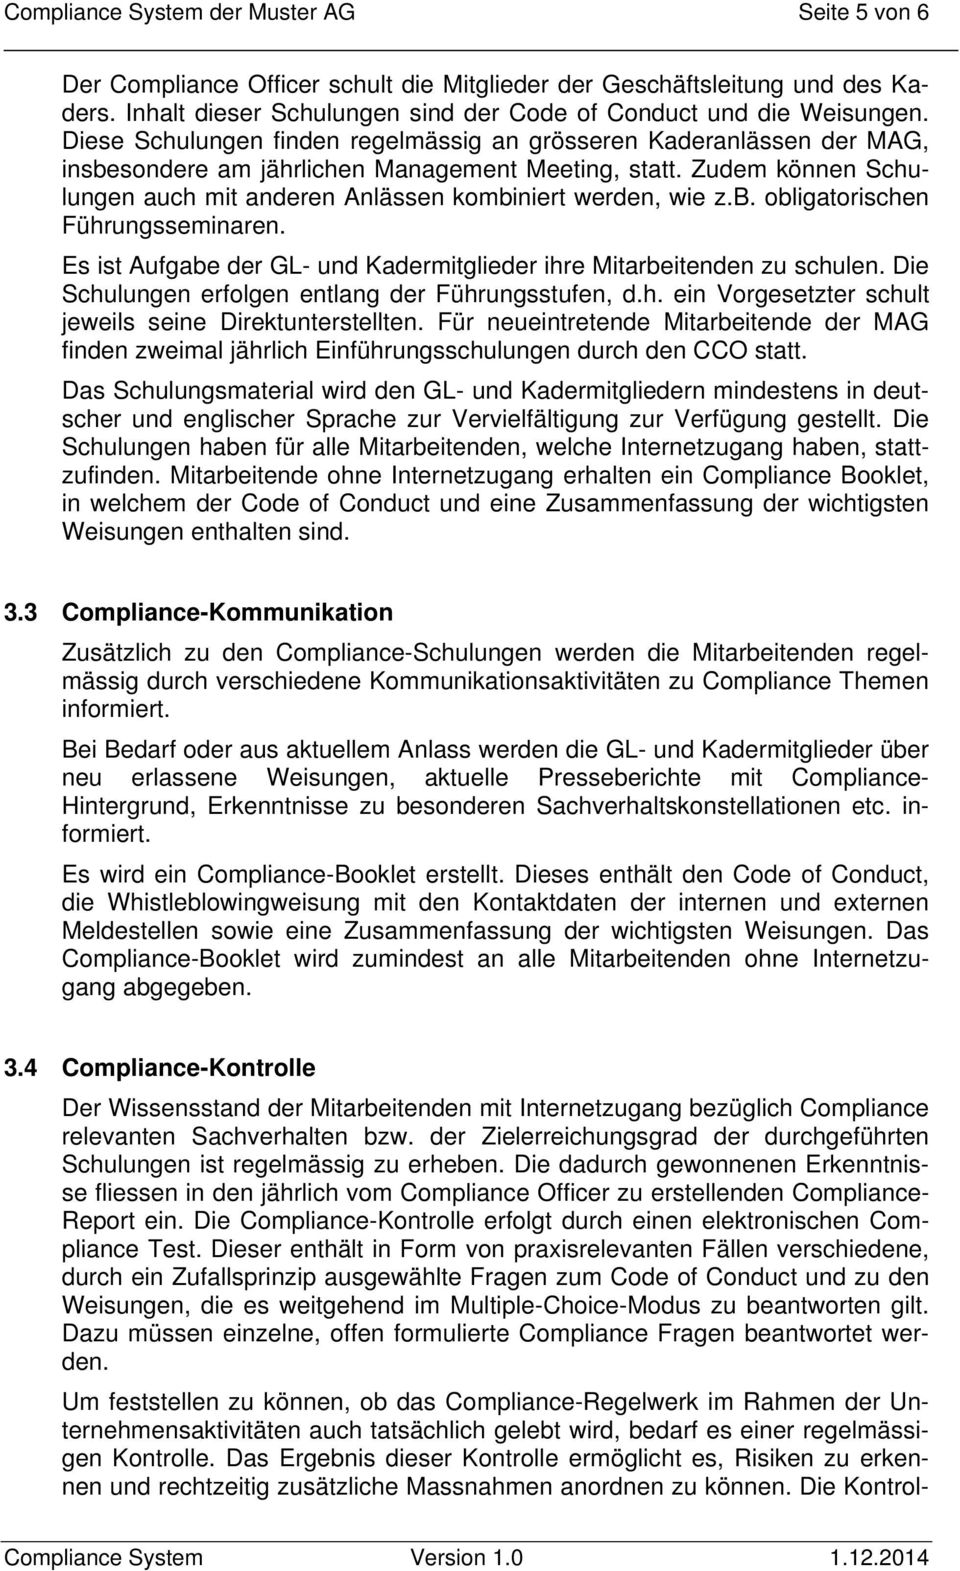 Compliance Management System Der Muster Ag Pdf Free Download 4